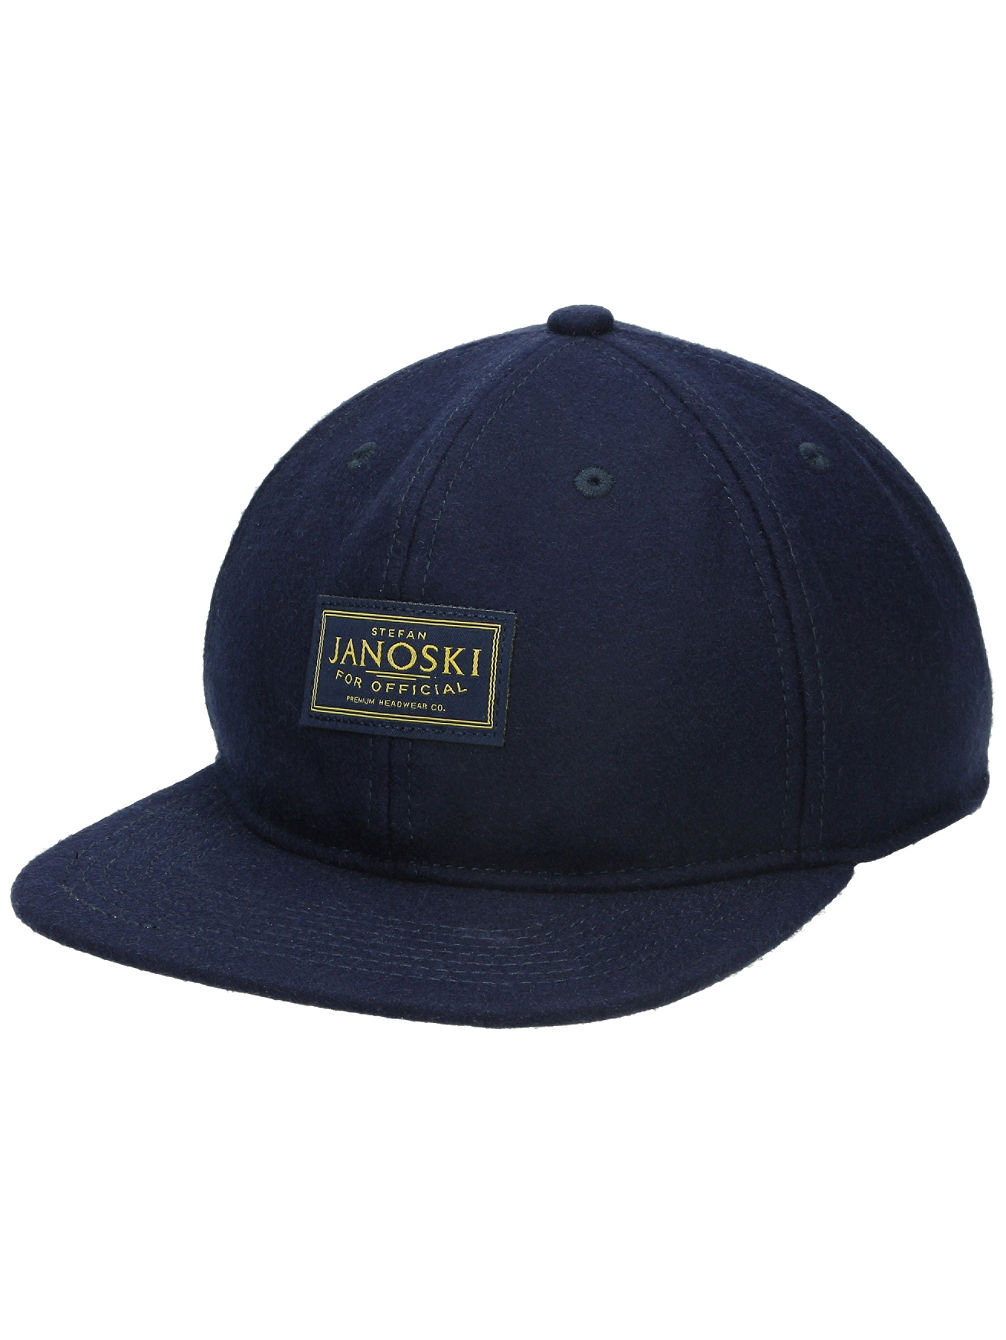 the-official-janoski-proof-cap